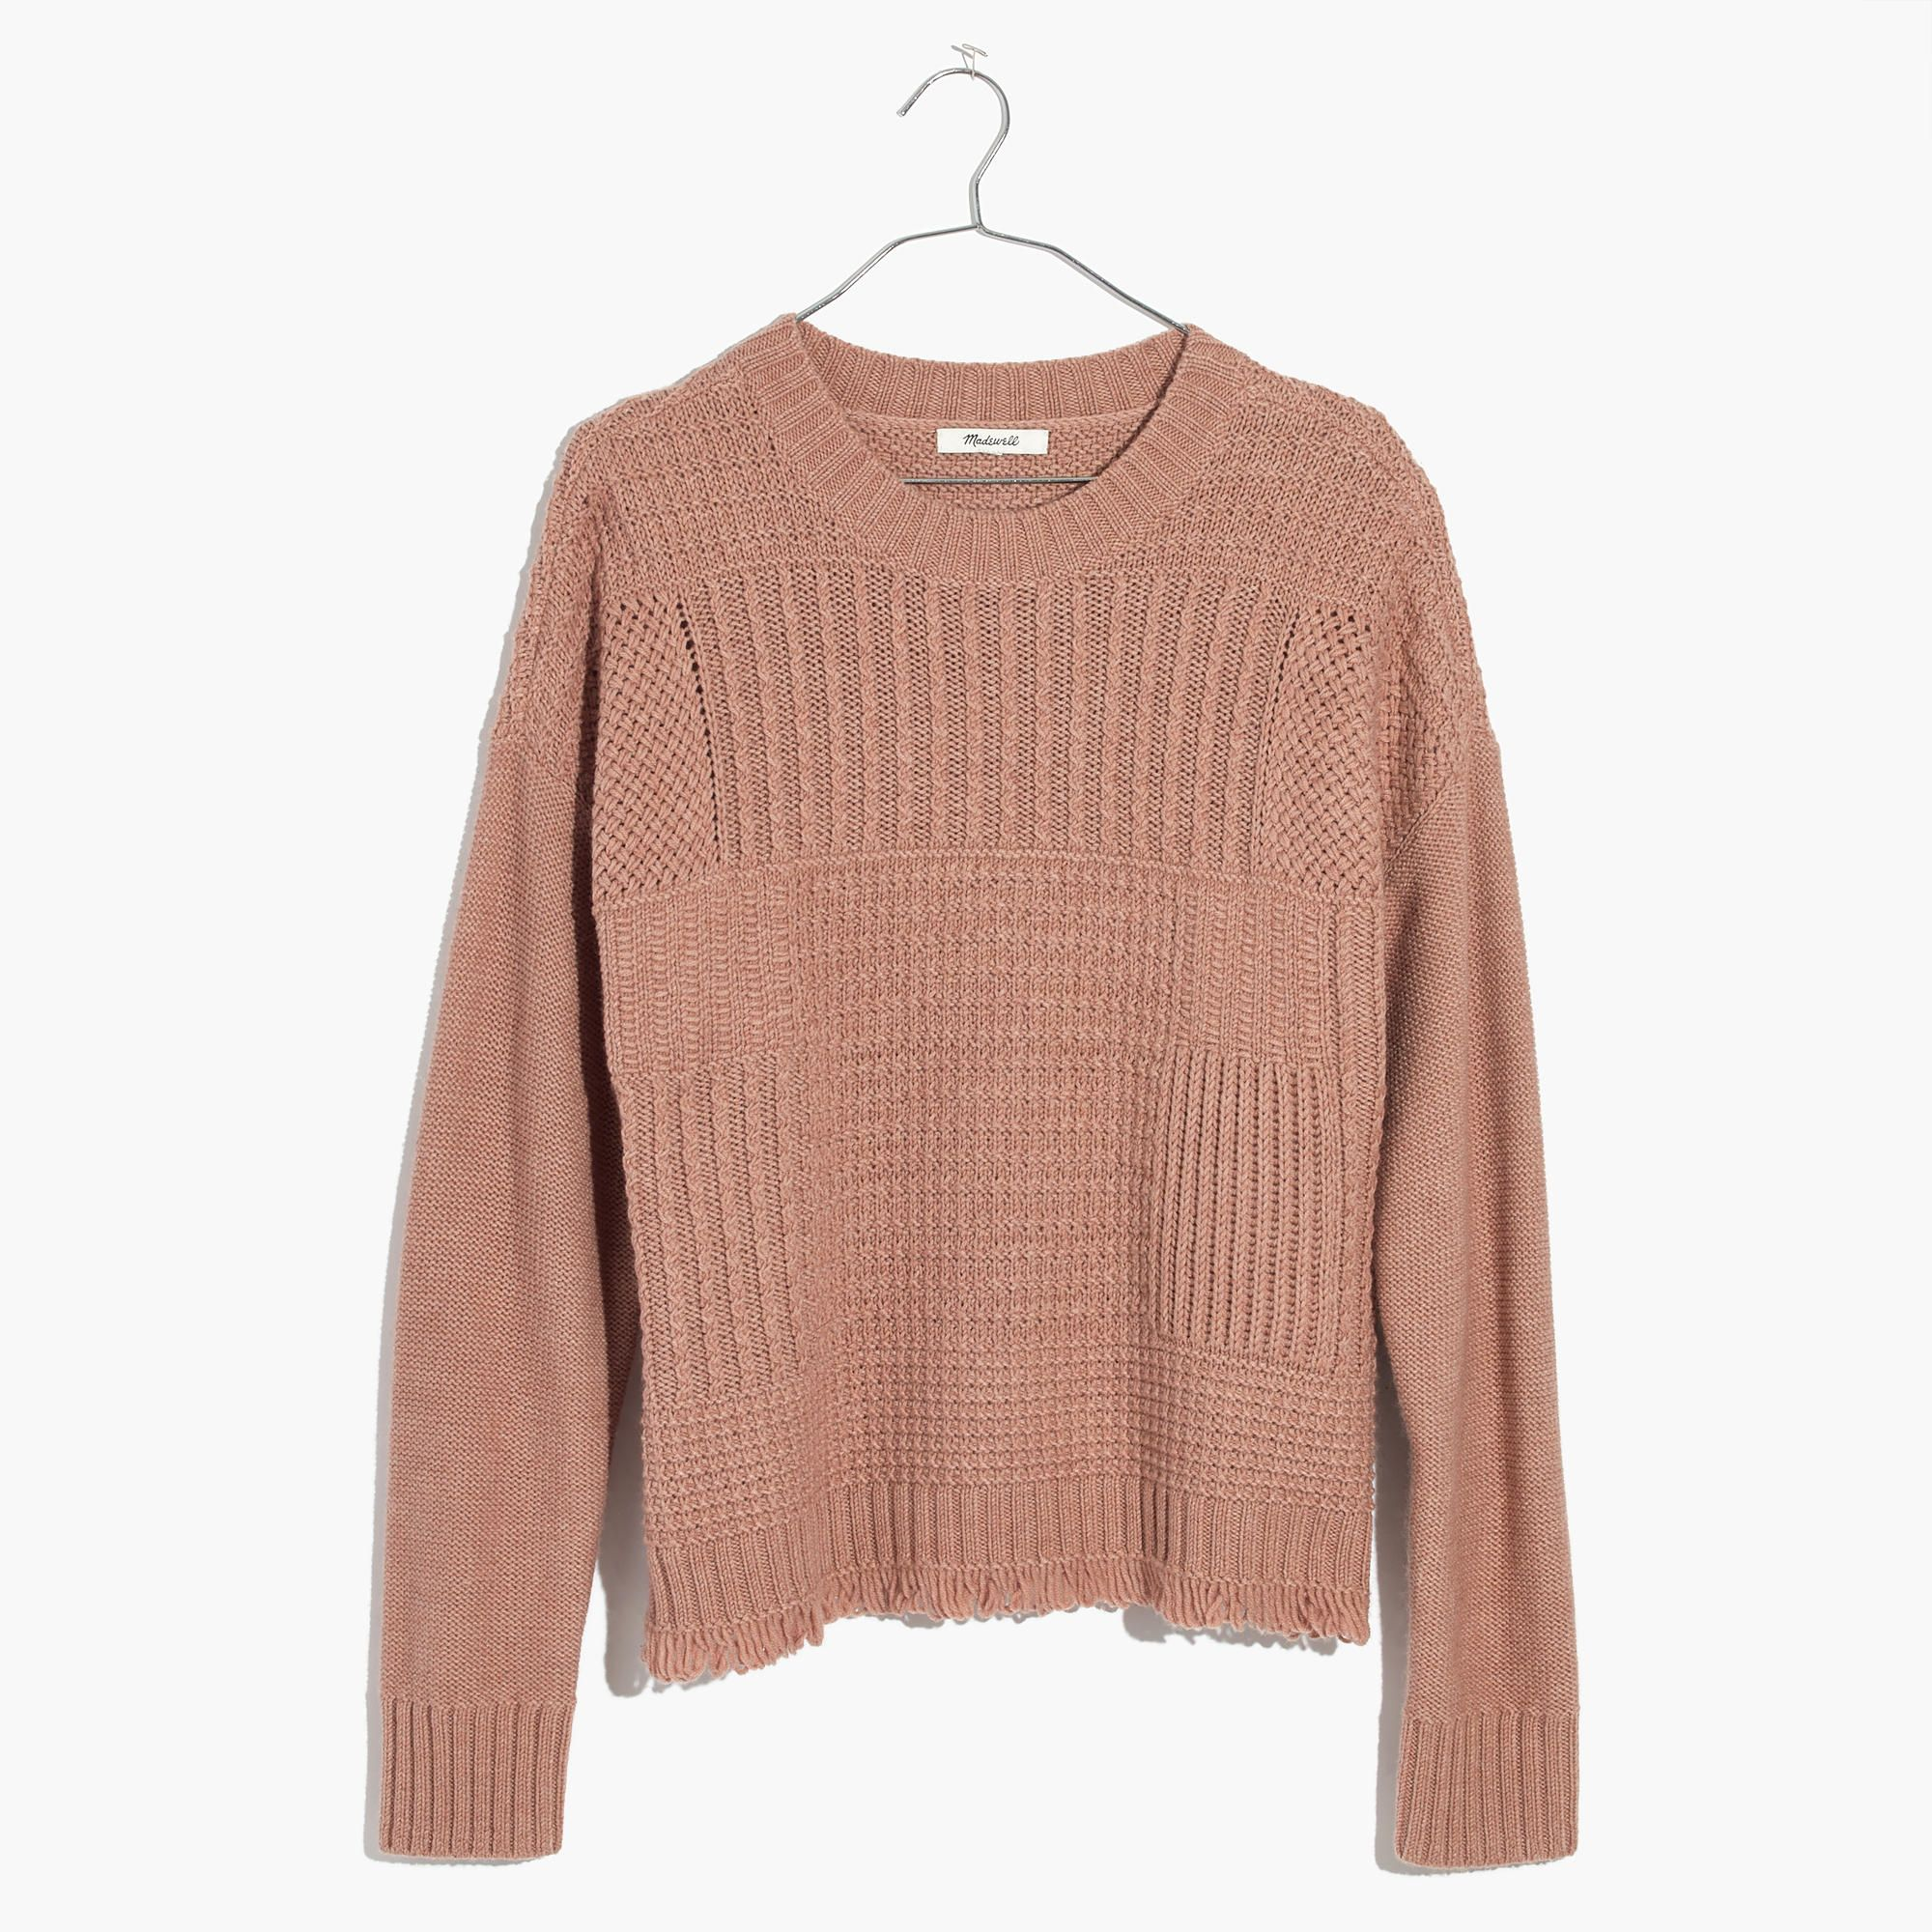 Stitchmix Pullover Sweater : sweaters | Madewell | Fall 18 Novelty ...